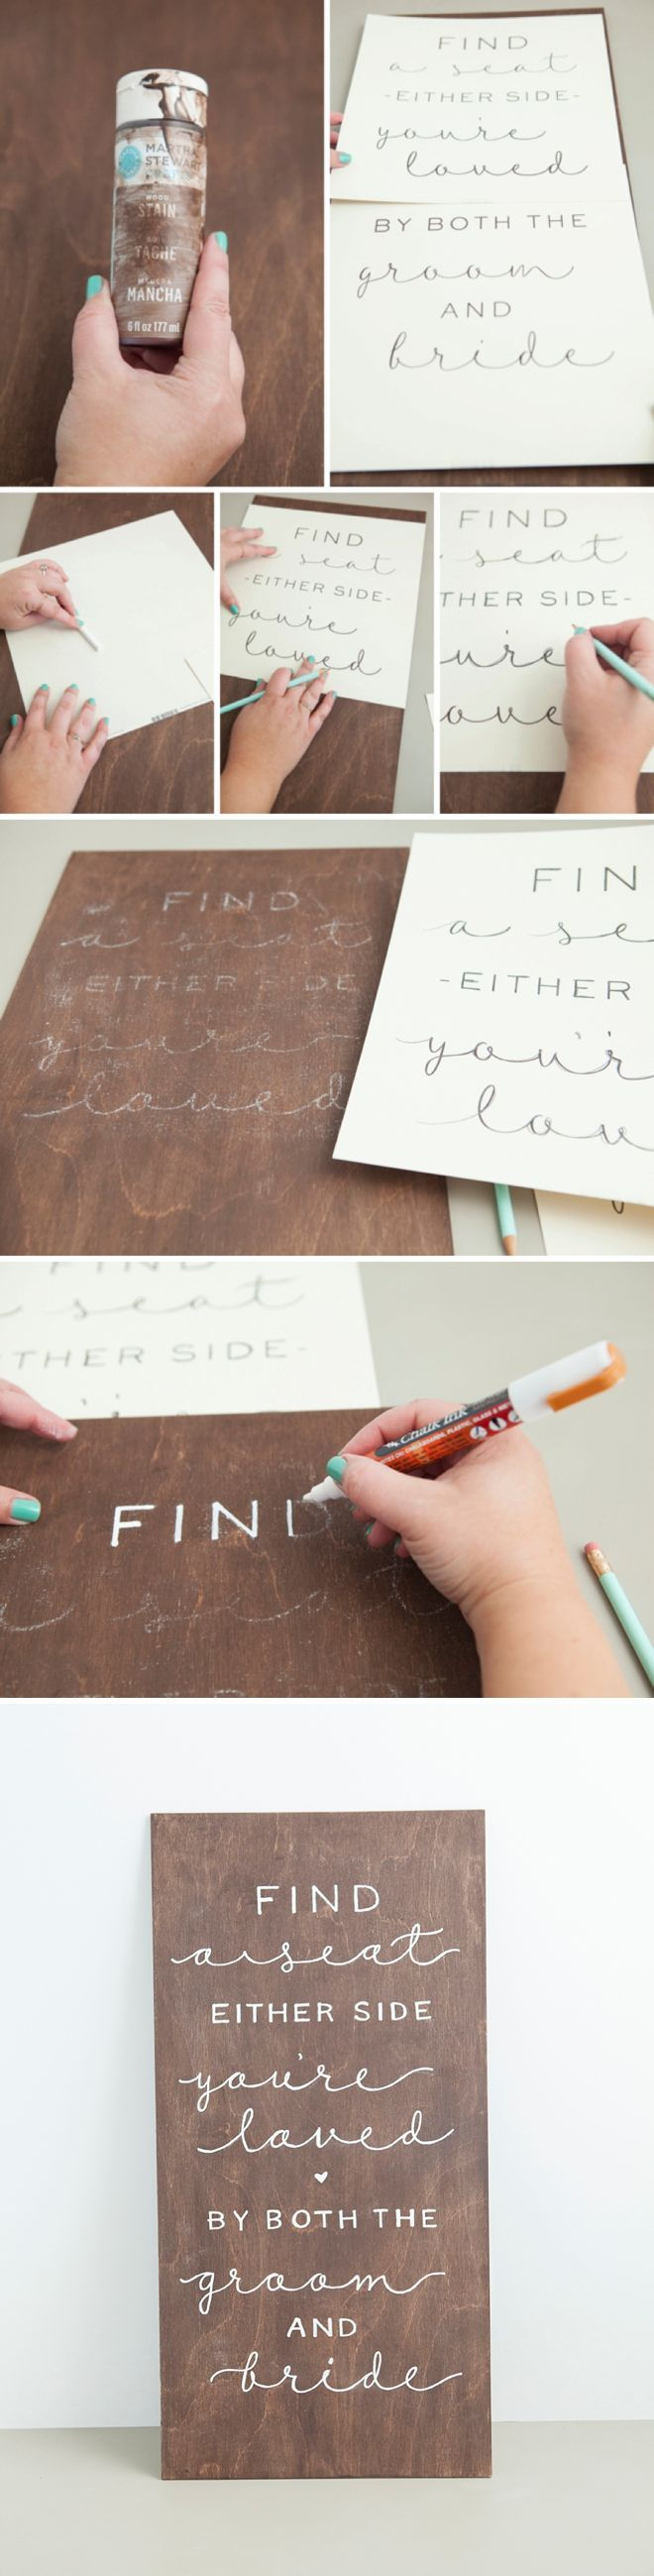 How to transfer a printed design onto a sign to easily trace!